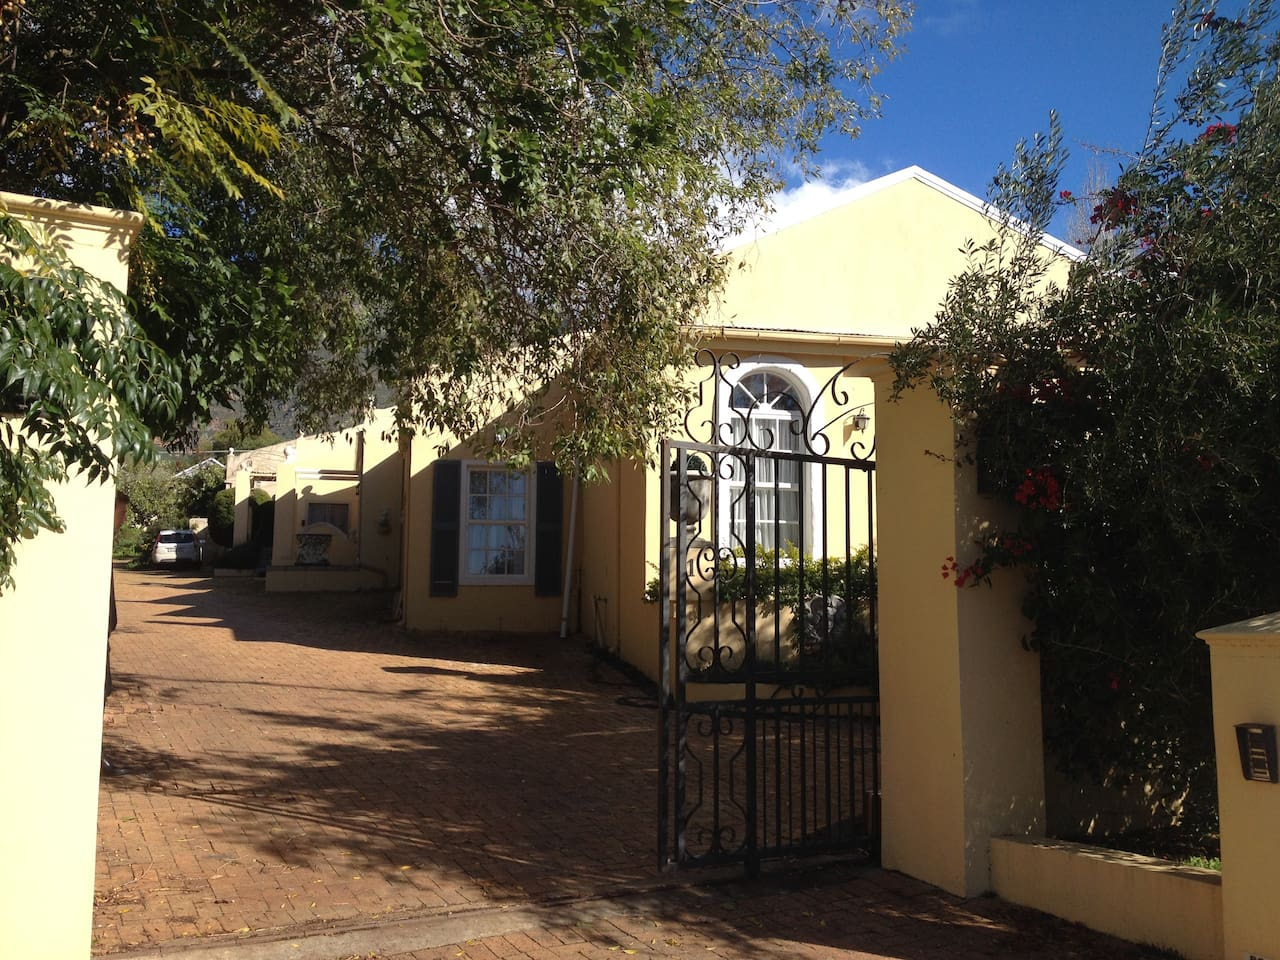 Welcome to The Riebeek West House on Sending Street, nestled in the Riebeek Valley, where you will find a blend of antique, vintage and modern touches in a cosy one bedroom house perfect for your AirBnB stay.